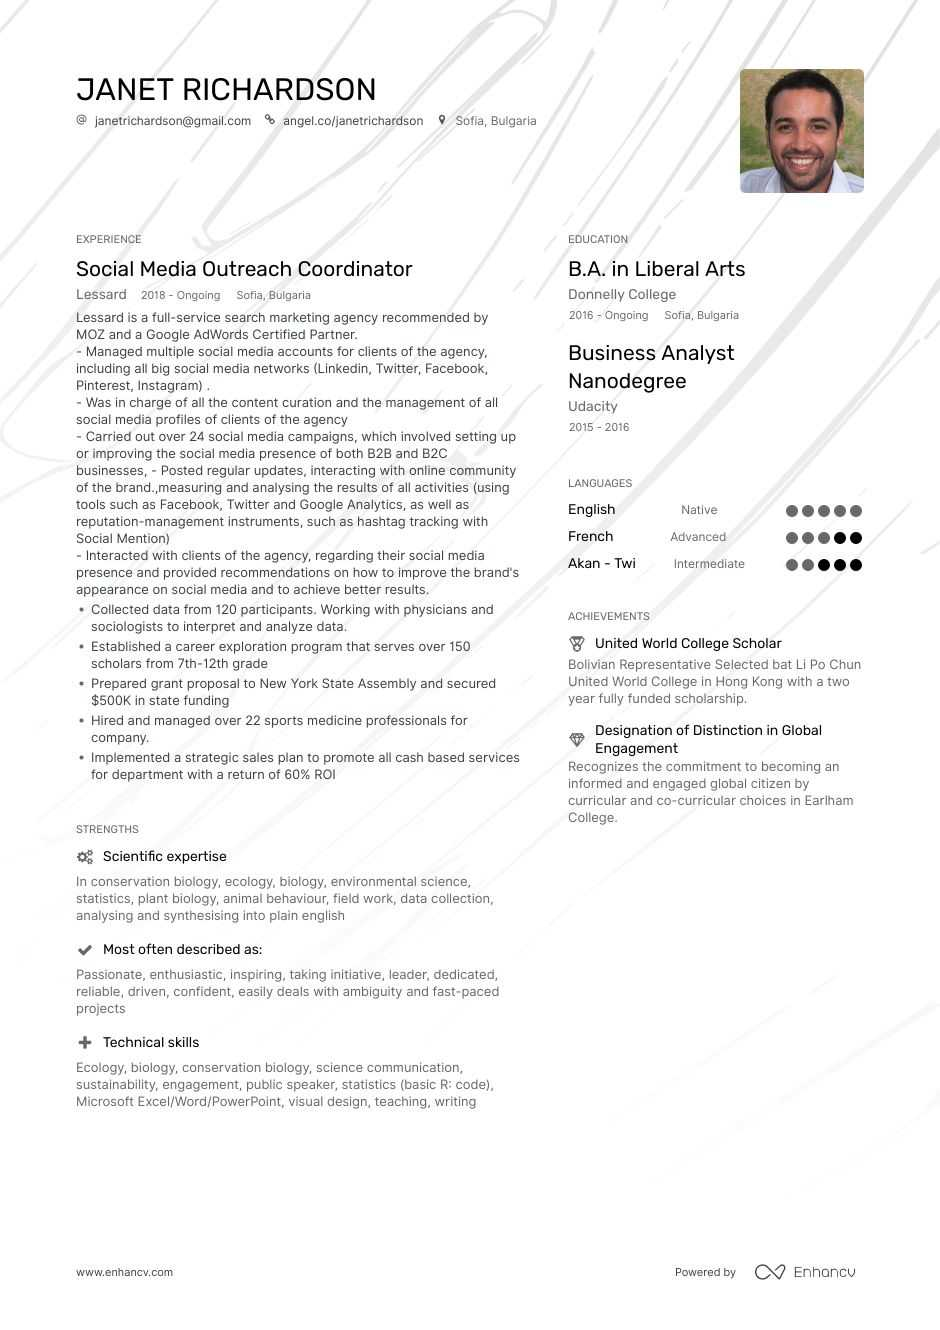 outreach coordinator resume example and guide for 2020